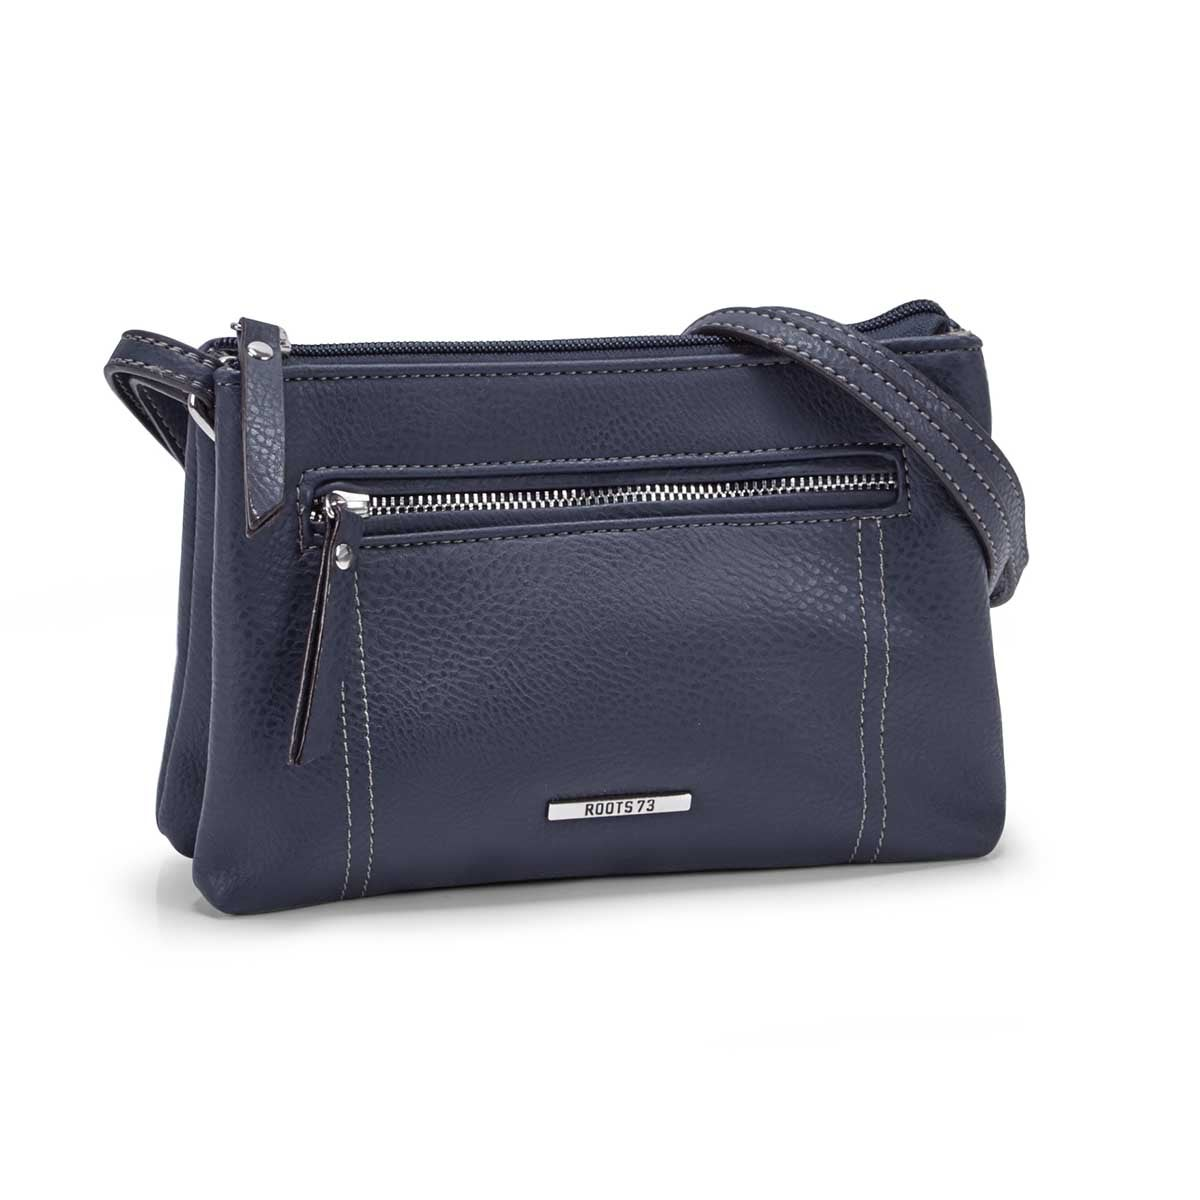 Lds navy 2 compartment mini cross body